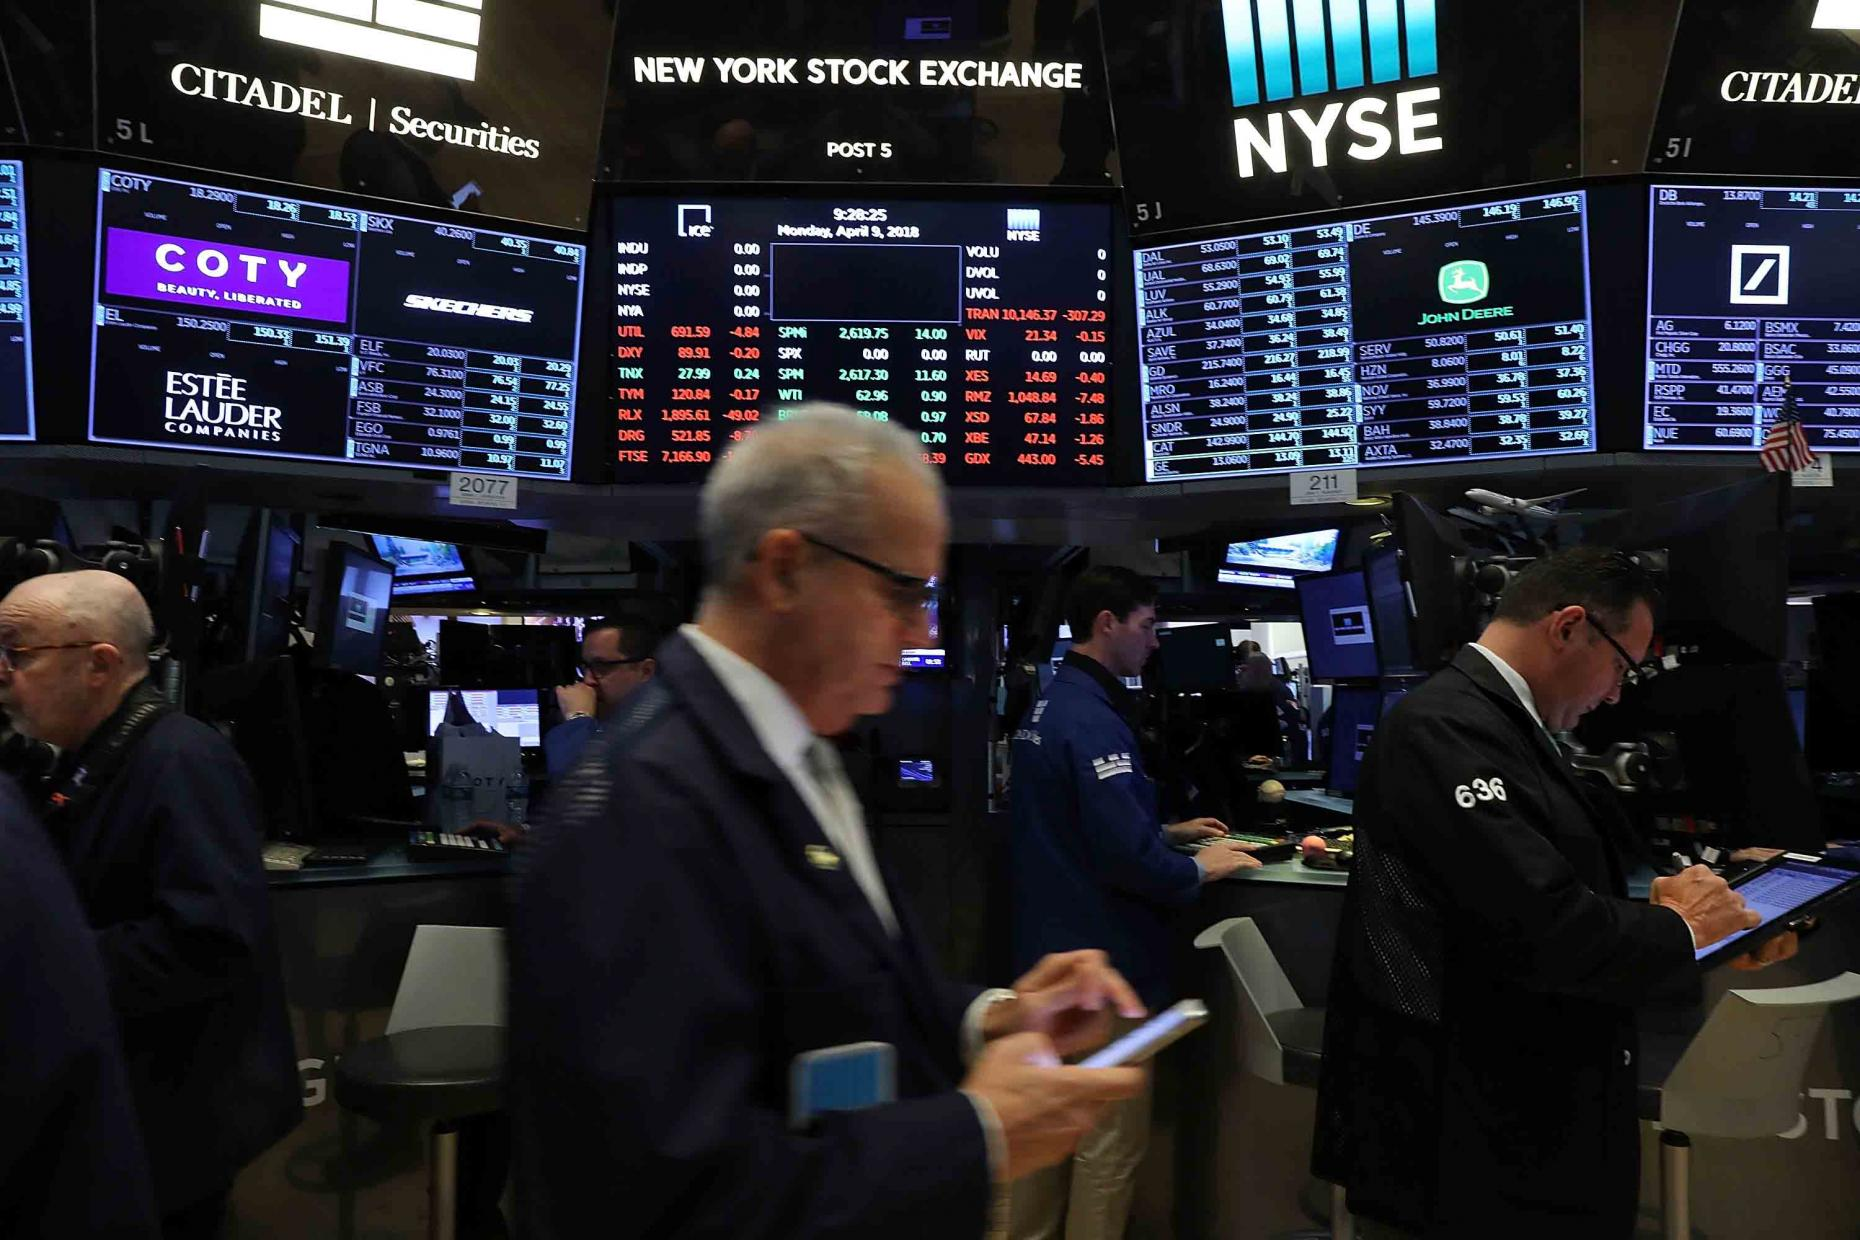 Buy Shares on the Stock Market